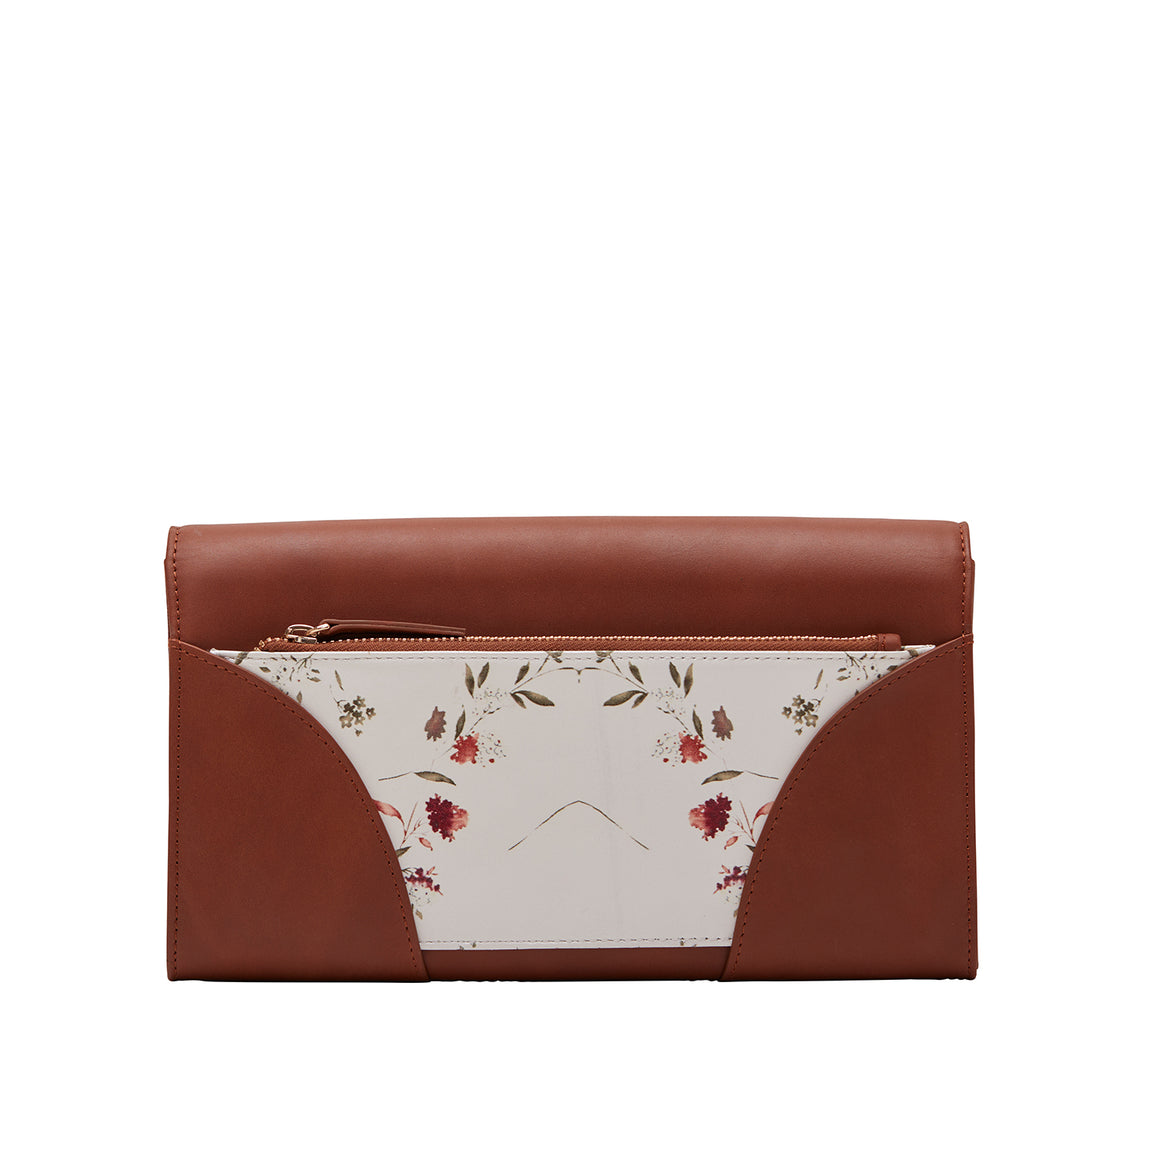 CH 0012 - TOHL RISCA WOMEN'S CLUTCH - VINTAGE TAN